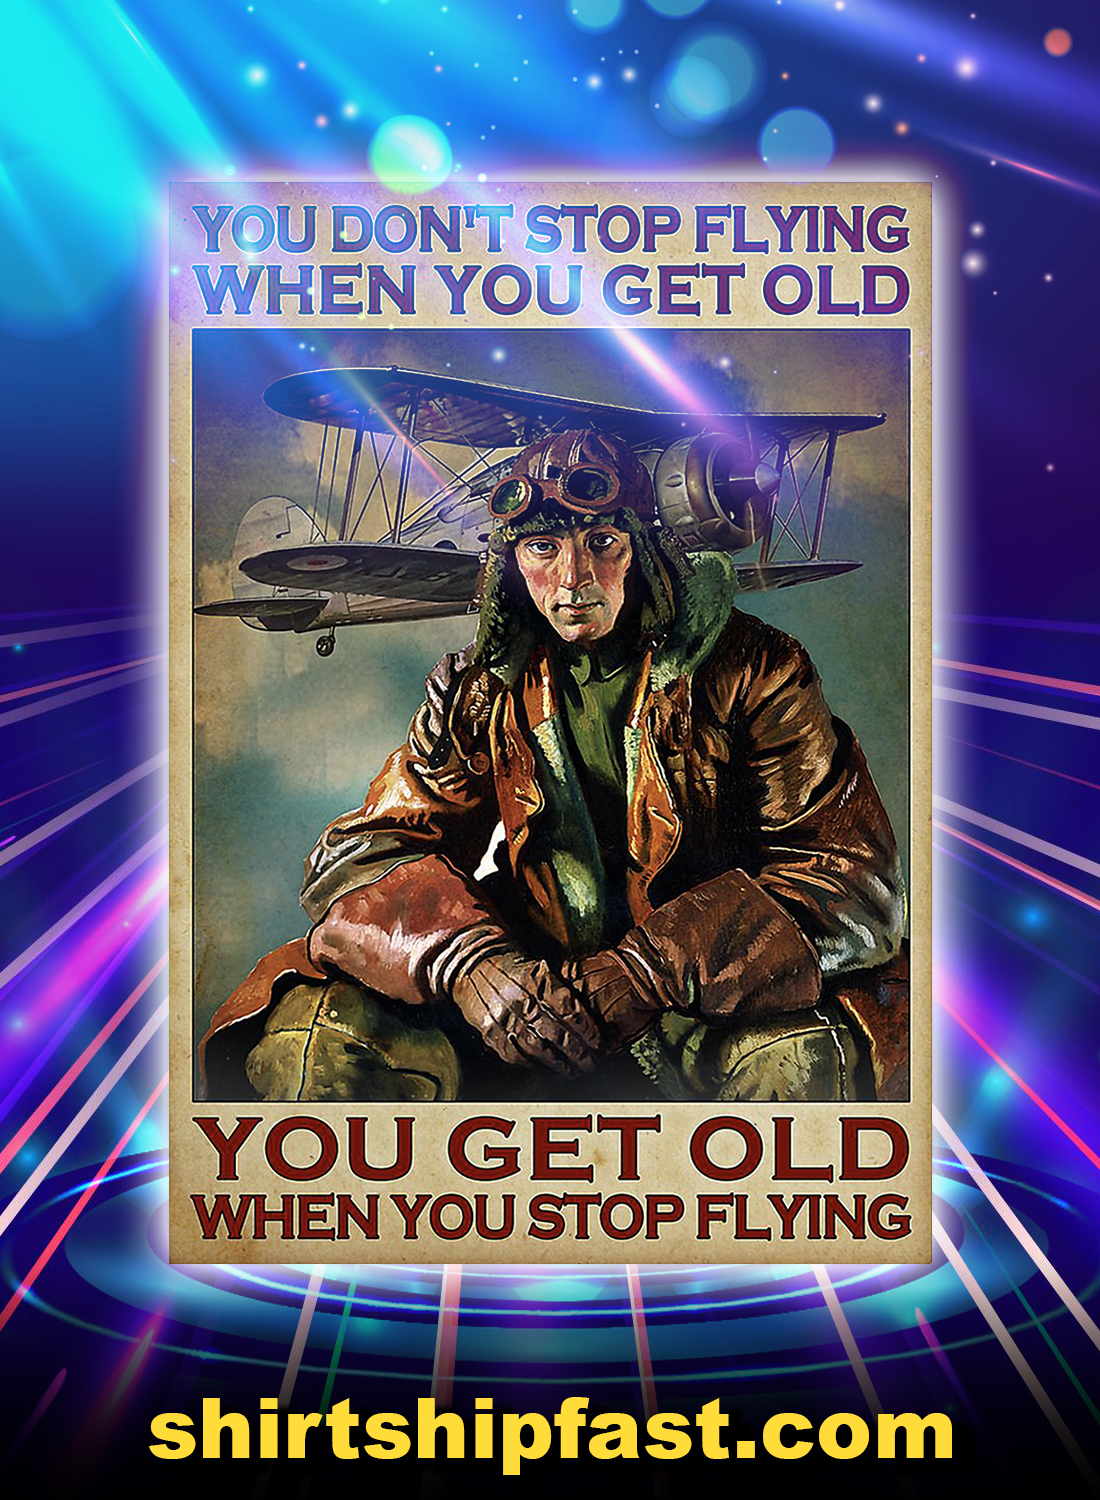 Poster Pilot you don't stop flying when you get old - A4